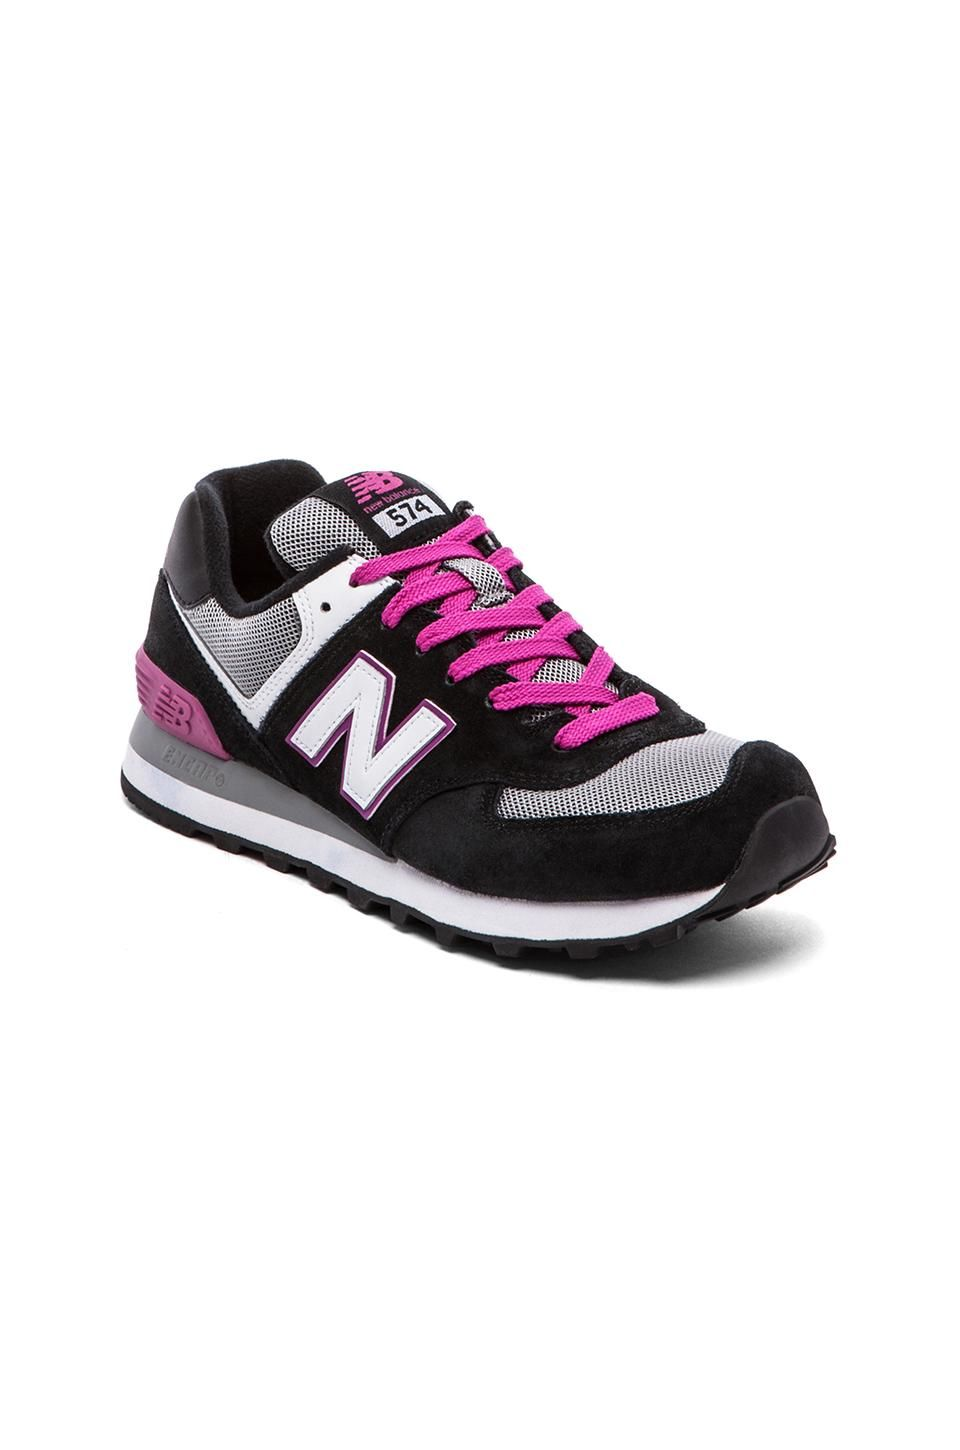 New balance 574 core collection sneaker in black pink